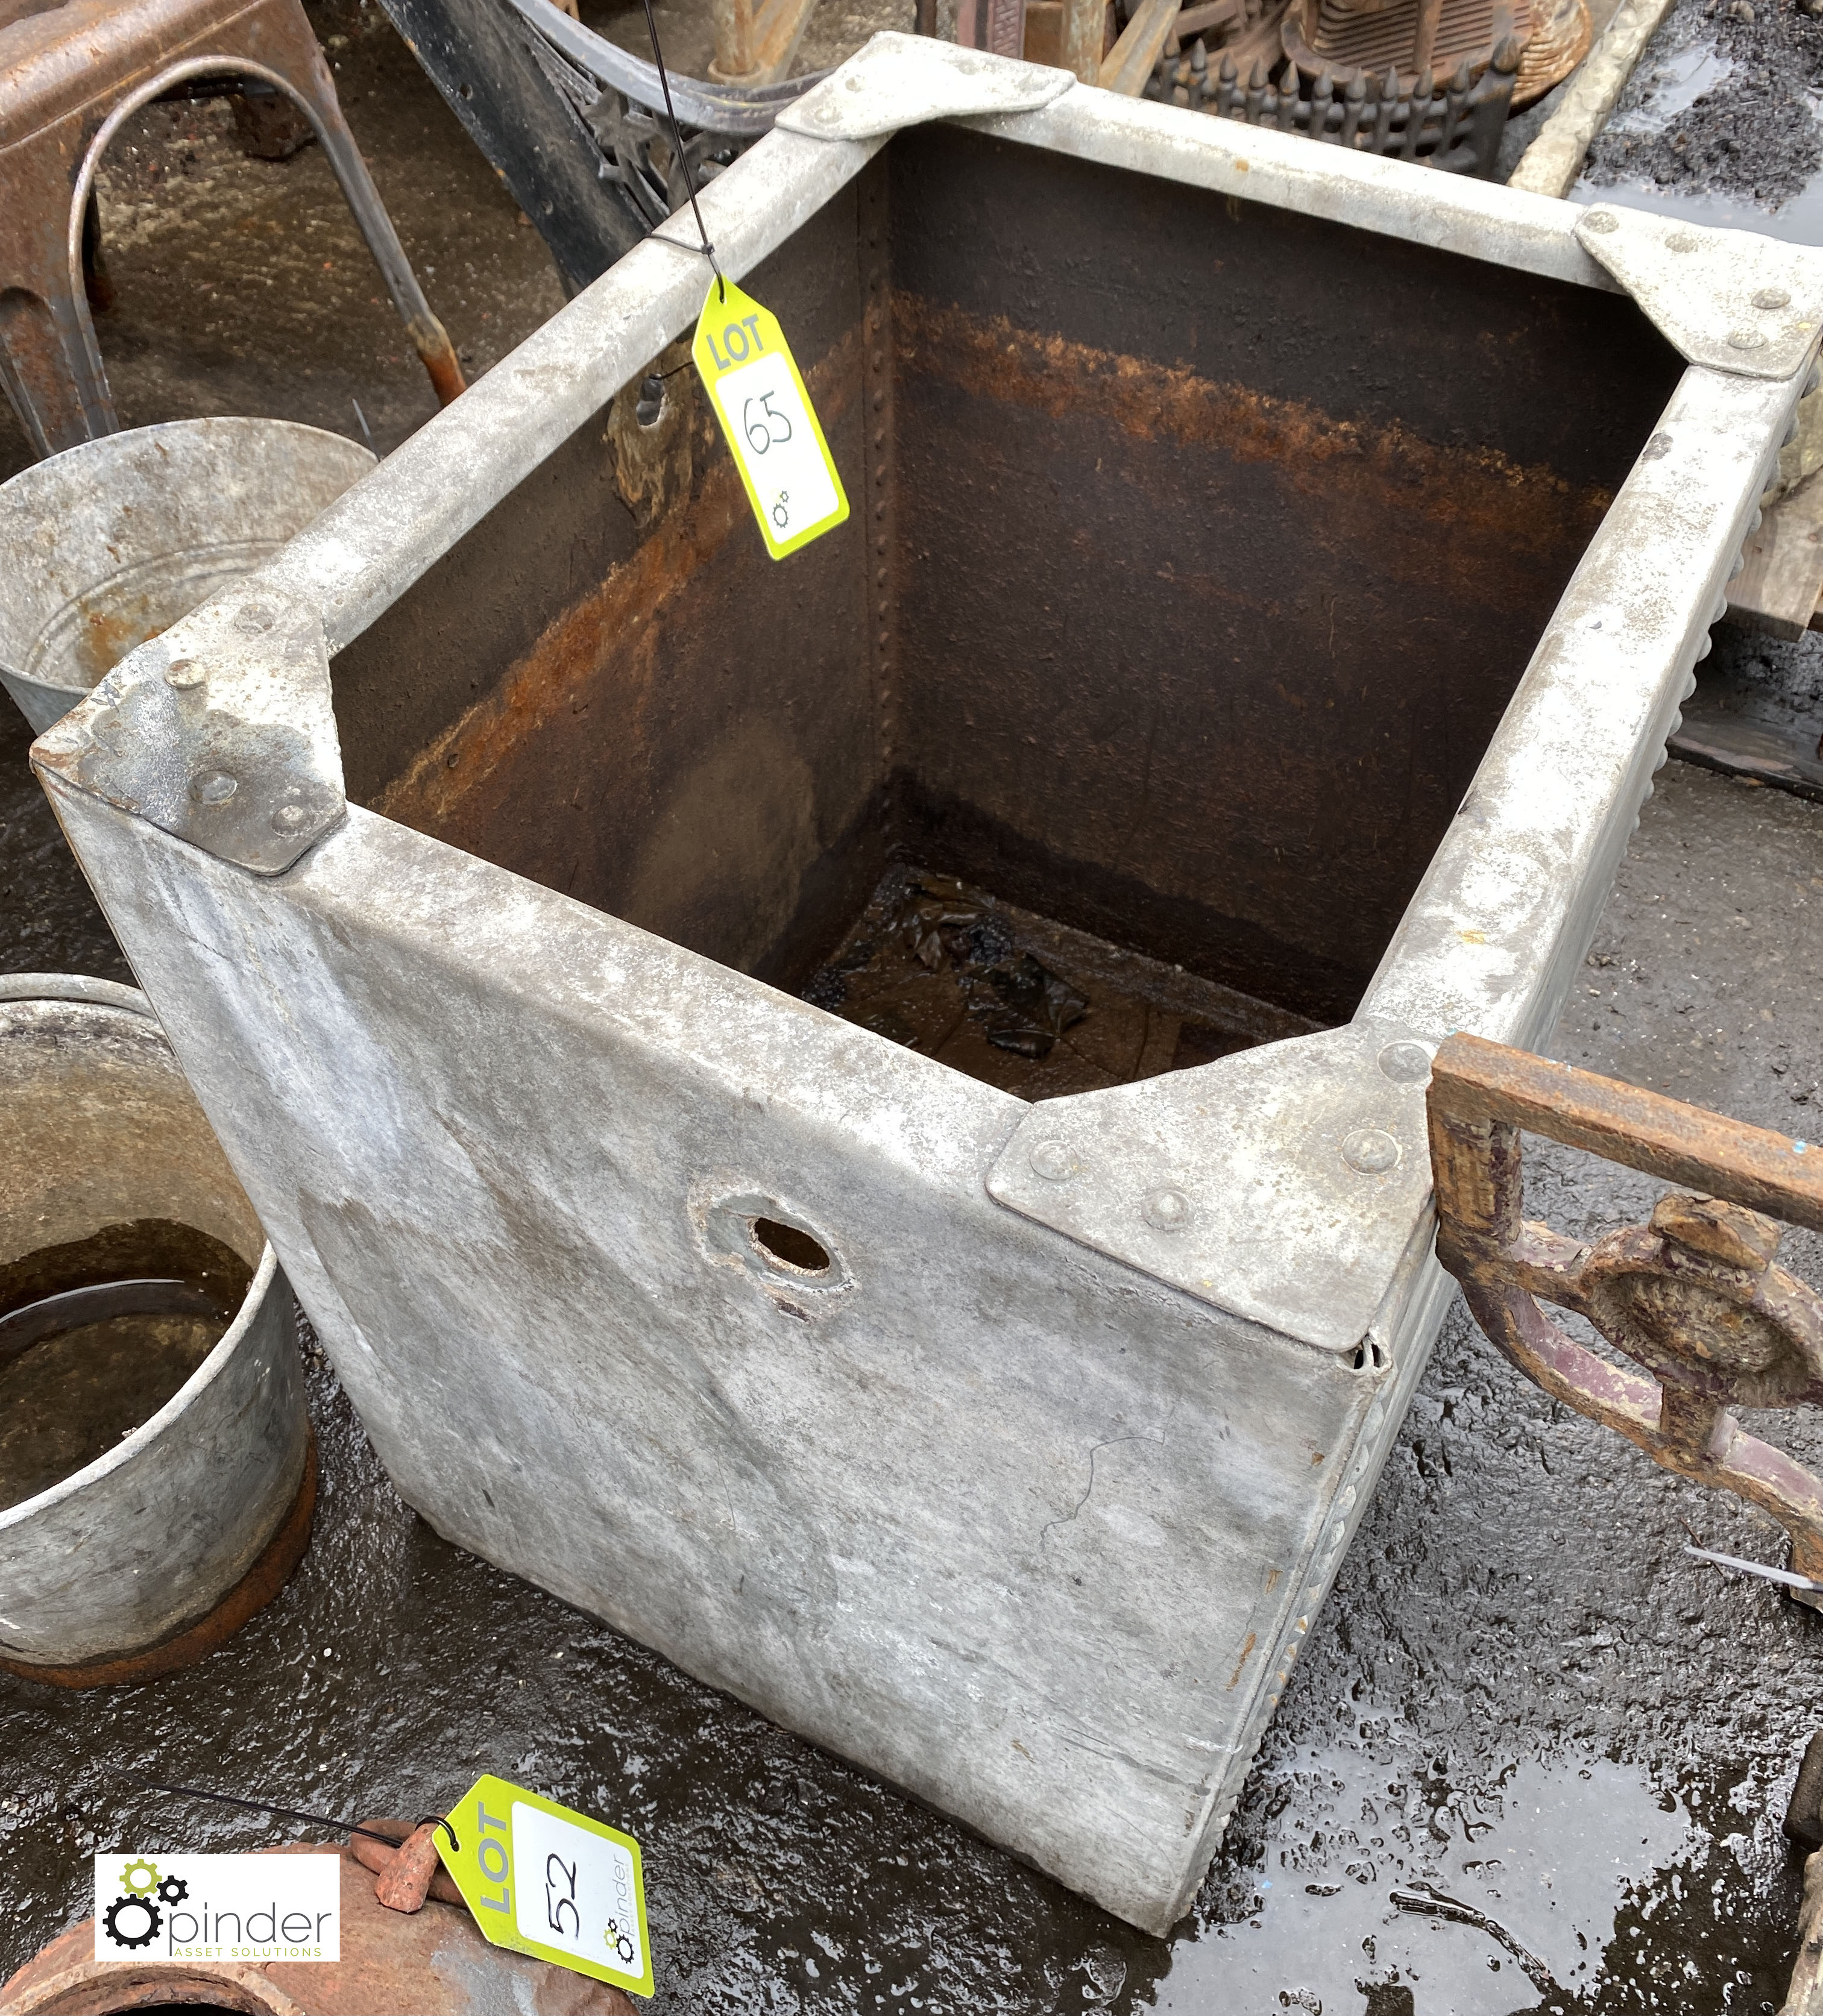 Galvanised Water Tank, 605mm x 480mm x 620mm tall (LOCATION: Sussex Street, Sheffield) - Image 2 of 3